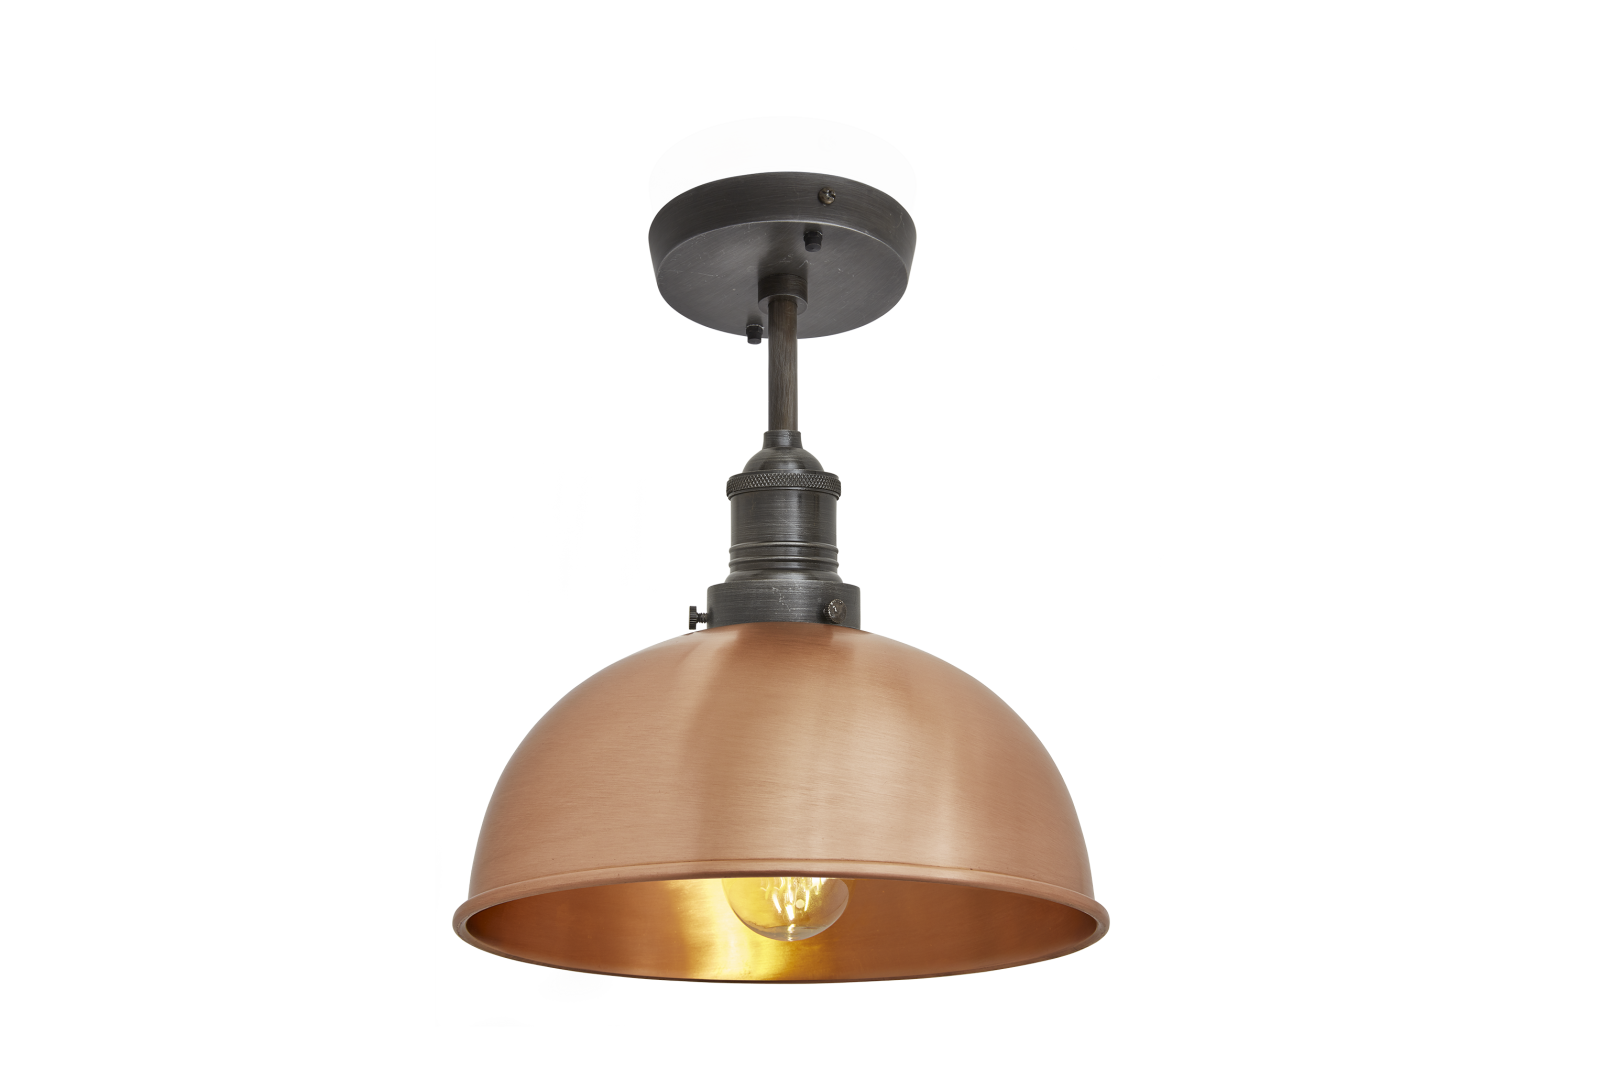 Brooklyn Dome Flush Mount Light - 8 Inch Brooklyn Dome Flush Mount - 8 Inch - Copper - Pewter Holder